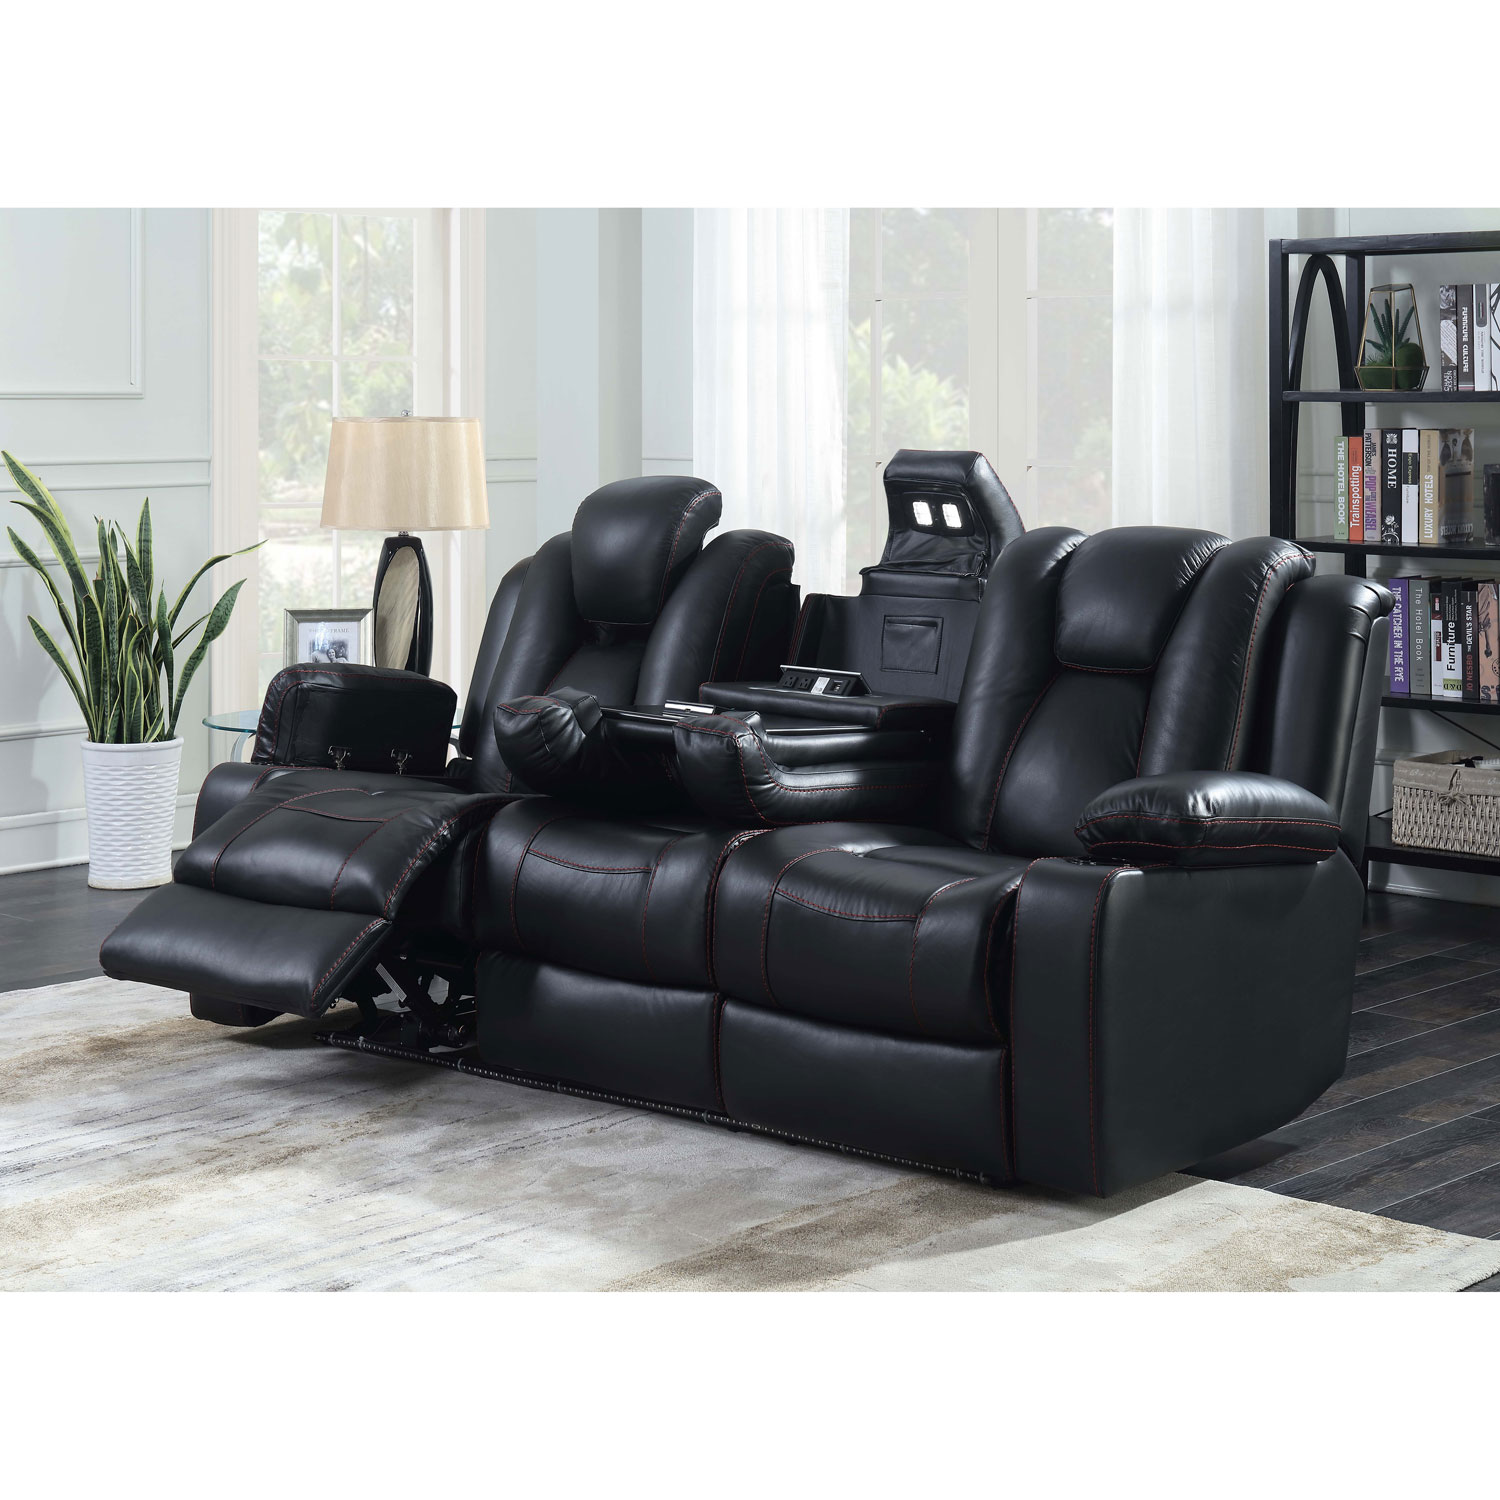 Starship 3 Seat Leather Power Recliner Home Theatre Seating with Console    Black. Home Theatre Seating   Sofas   Sectionals   Best Buy Canada